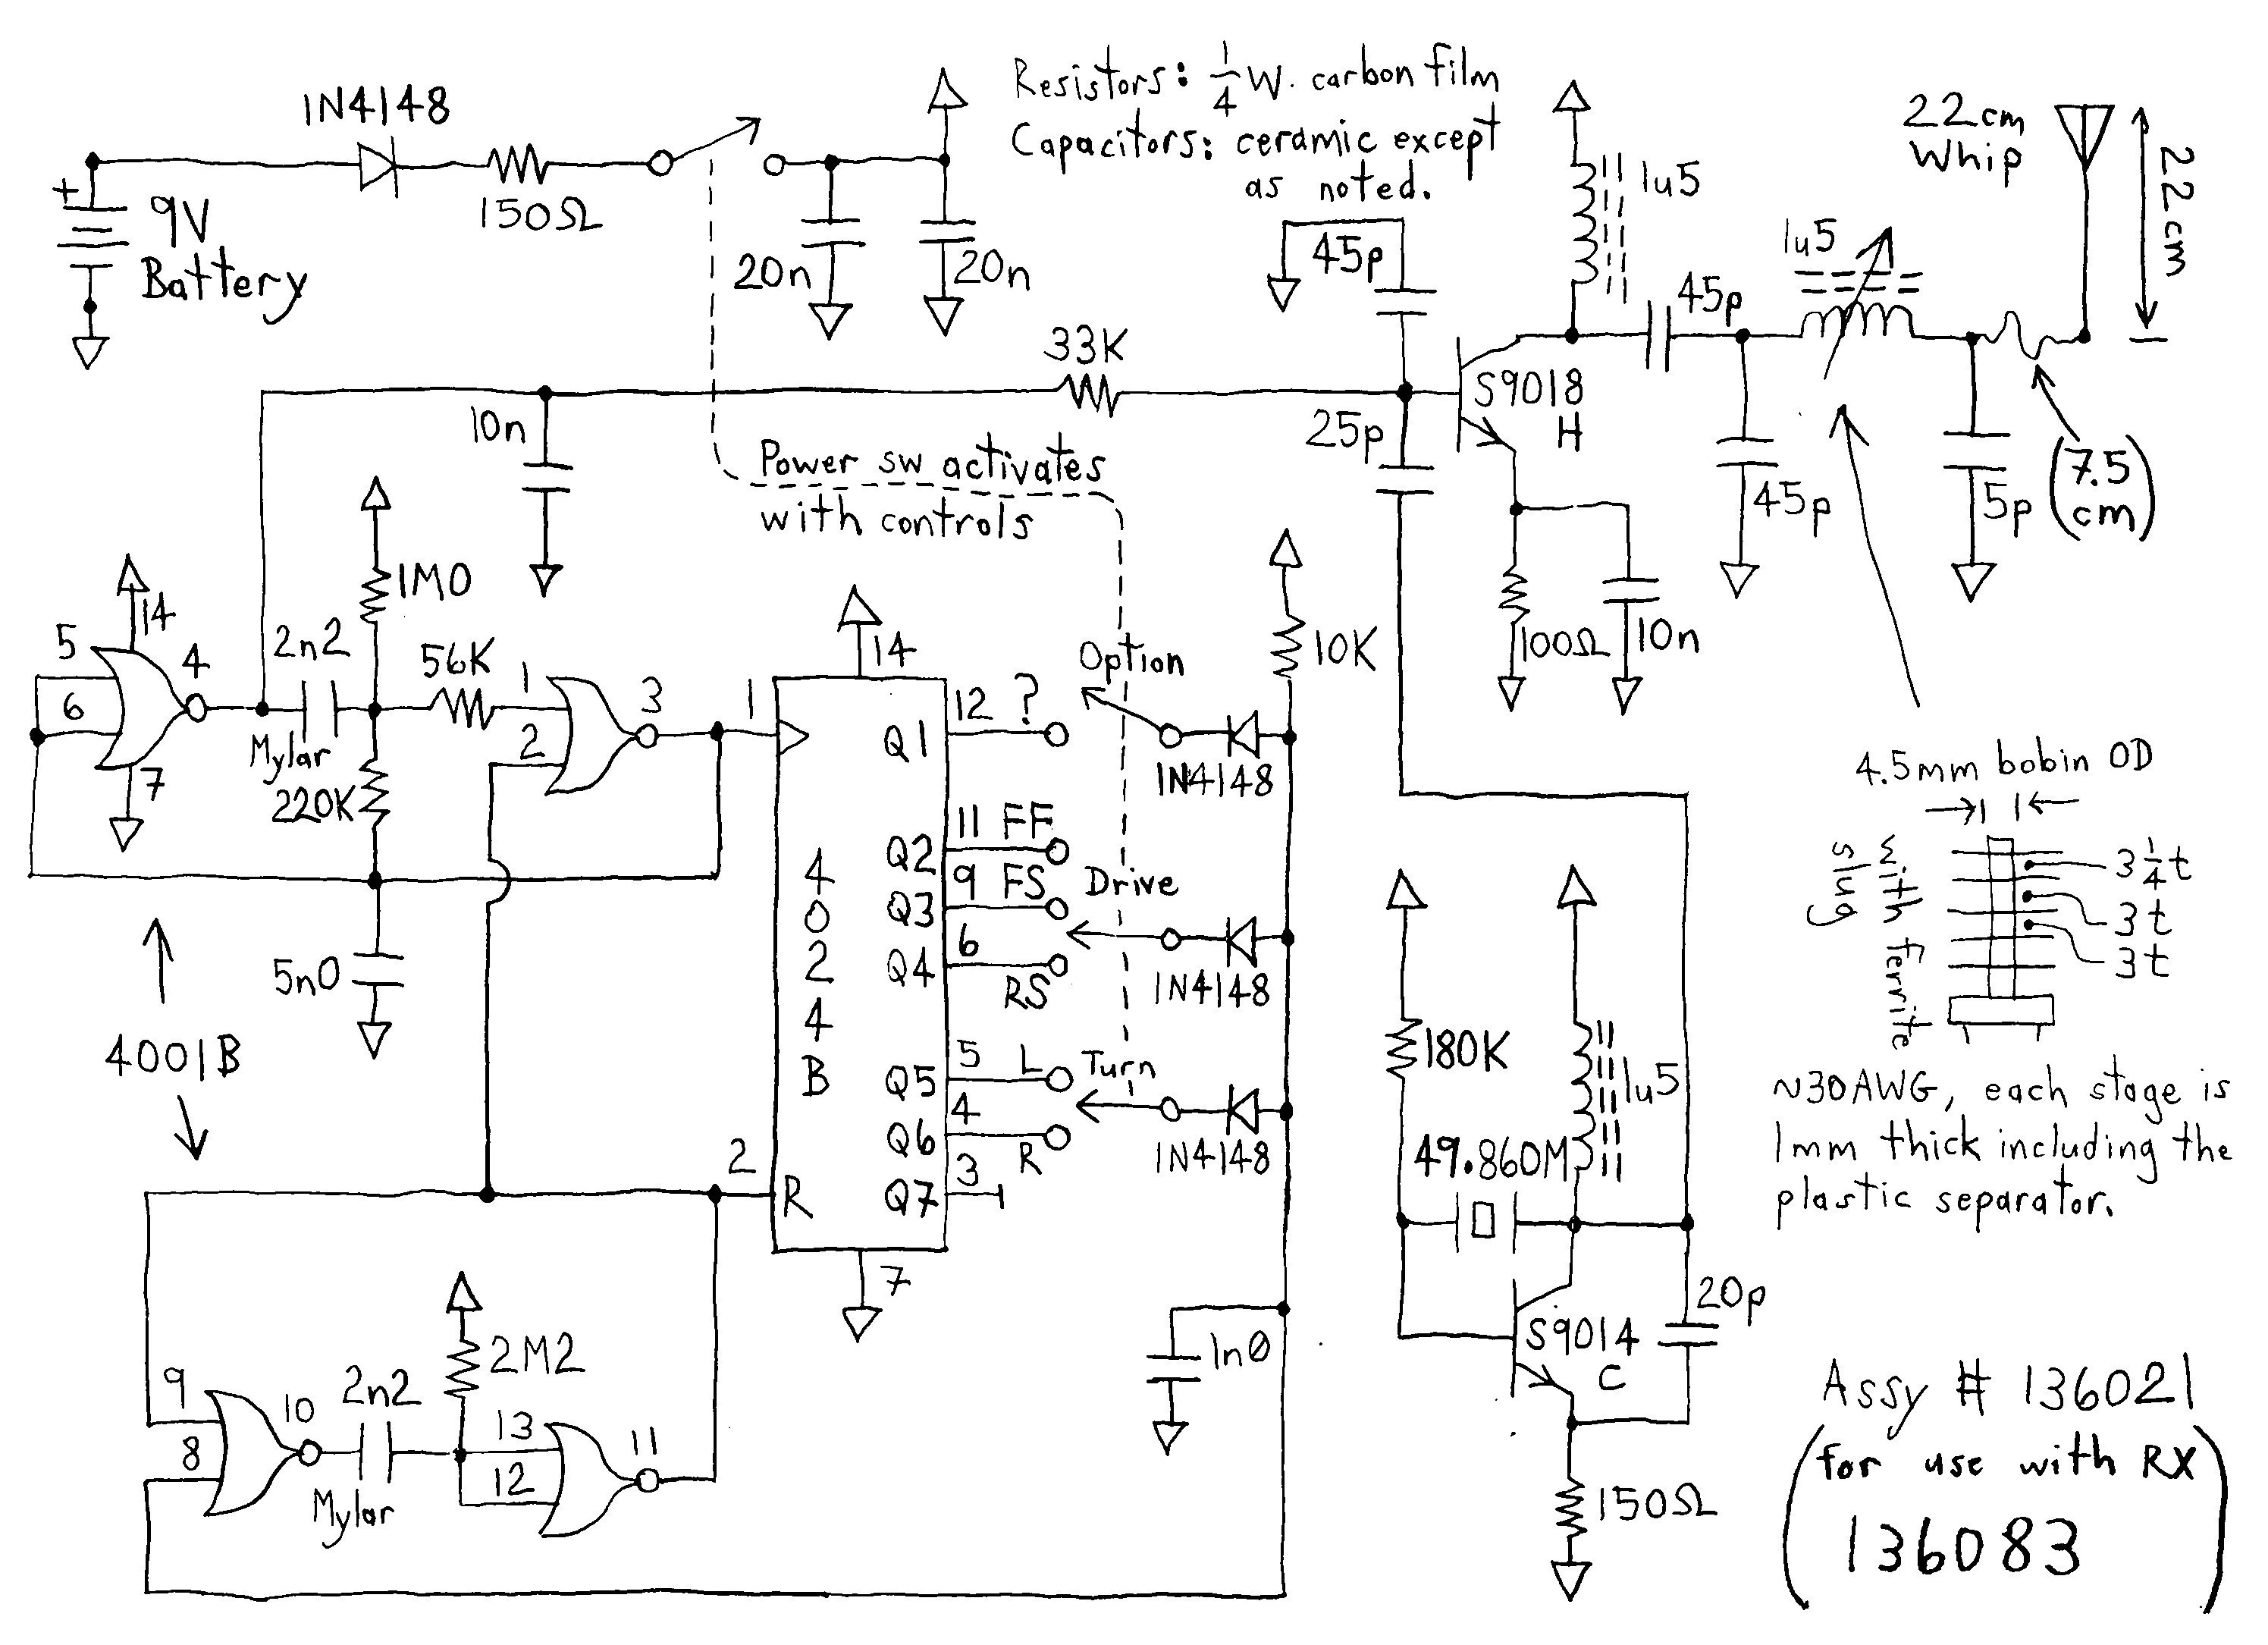 D16z6 Engine Harness Diagram 1997 Lexus Wiring Diagram Expert Schematics Diagram Of D16z6 Engine Harness Diagram